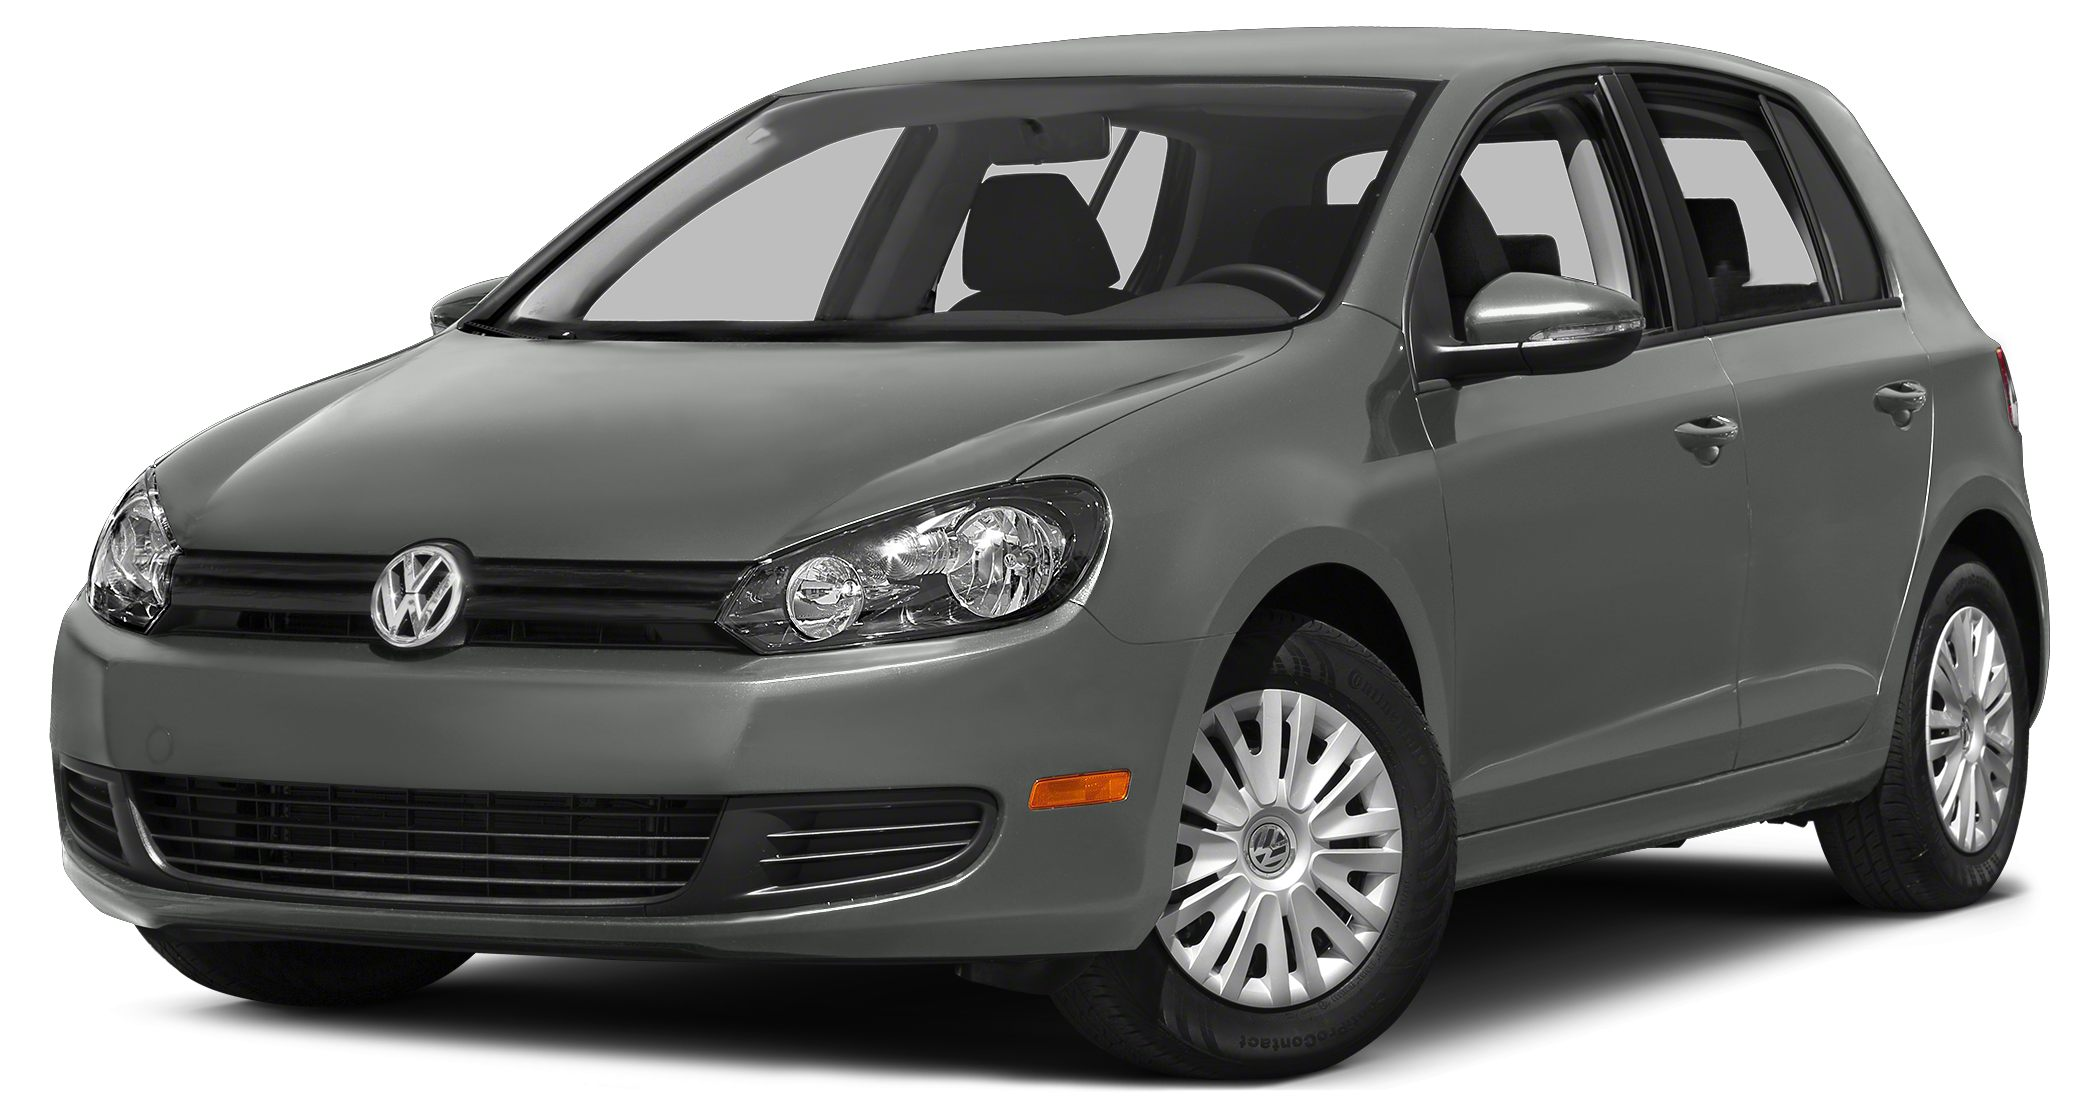 2014 Volkswagen Golf 25 WE SELL OUR VEHICLES AT WHOLESALE PRICES AND STAND BEHIND OUR CARS